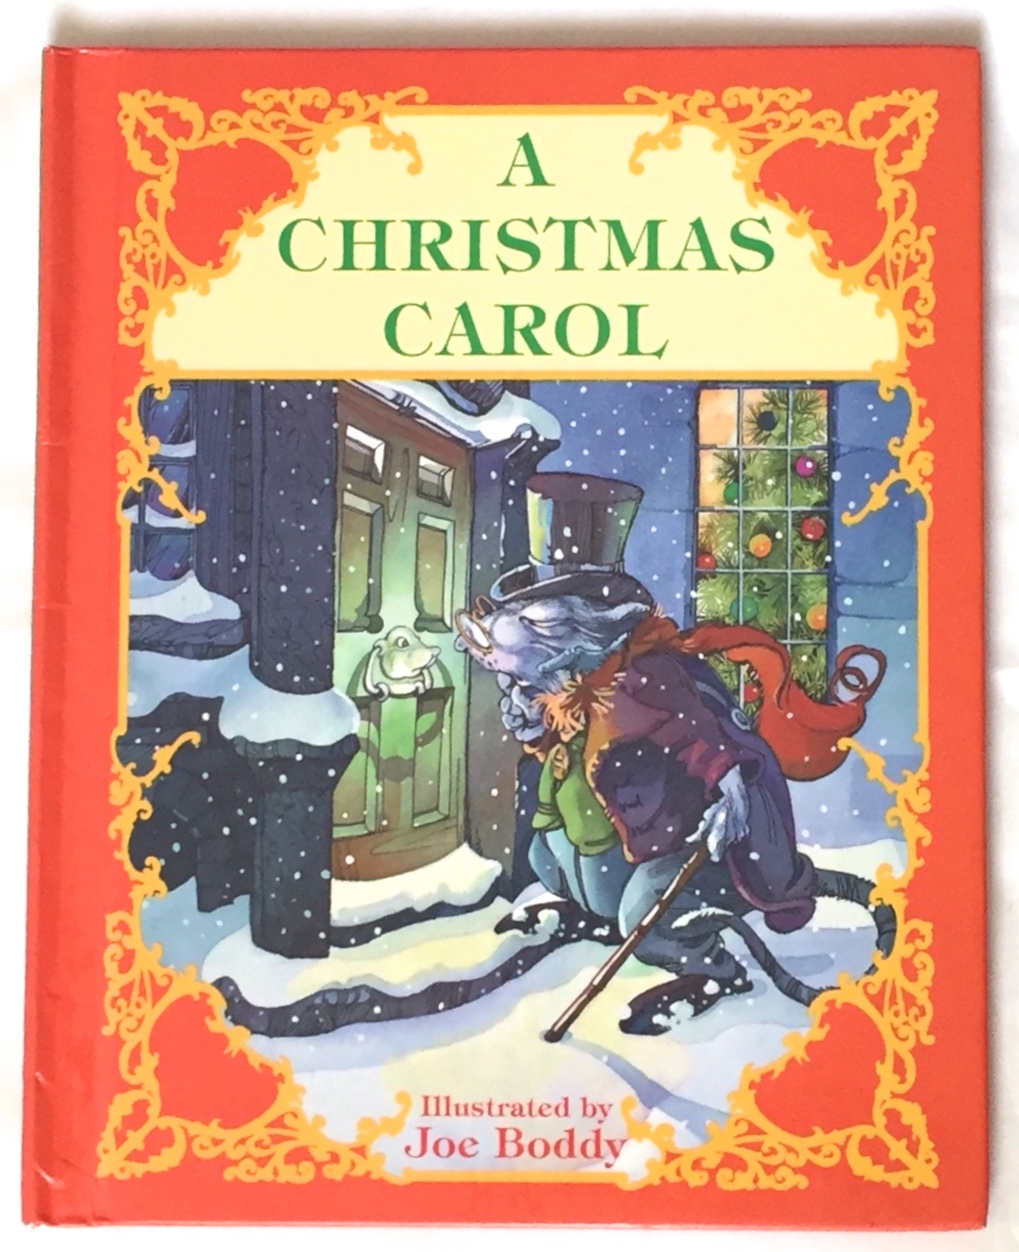 A Christmas Carol Book Cover.A Christmas Carol Illustrated By Joe Boddy Adapted From The Story By Charles Dickens By Charles Dickens On Borg Antiquarian